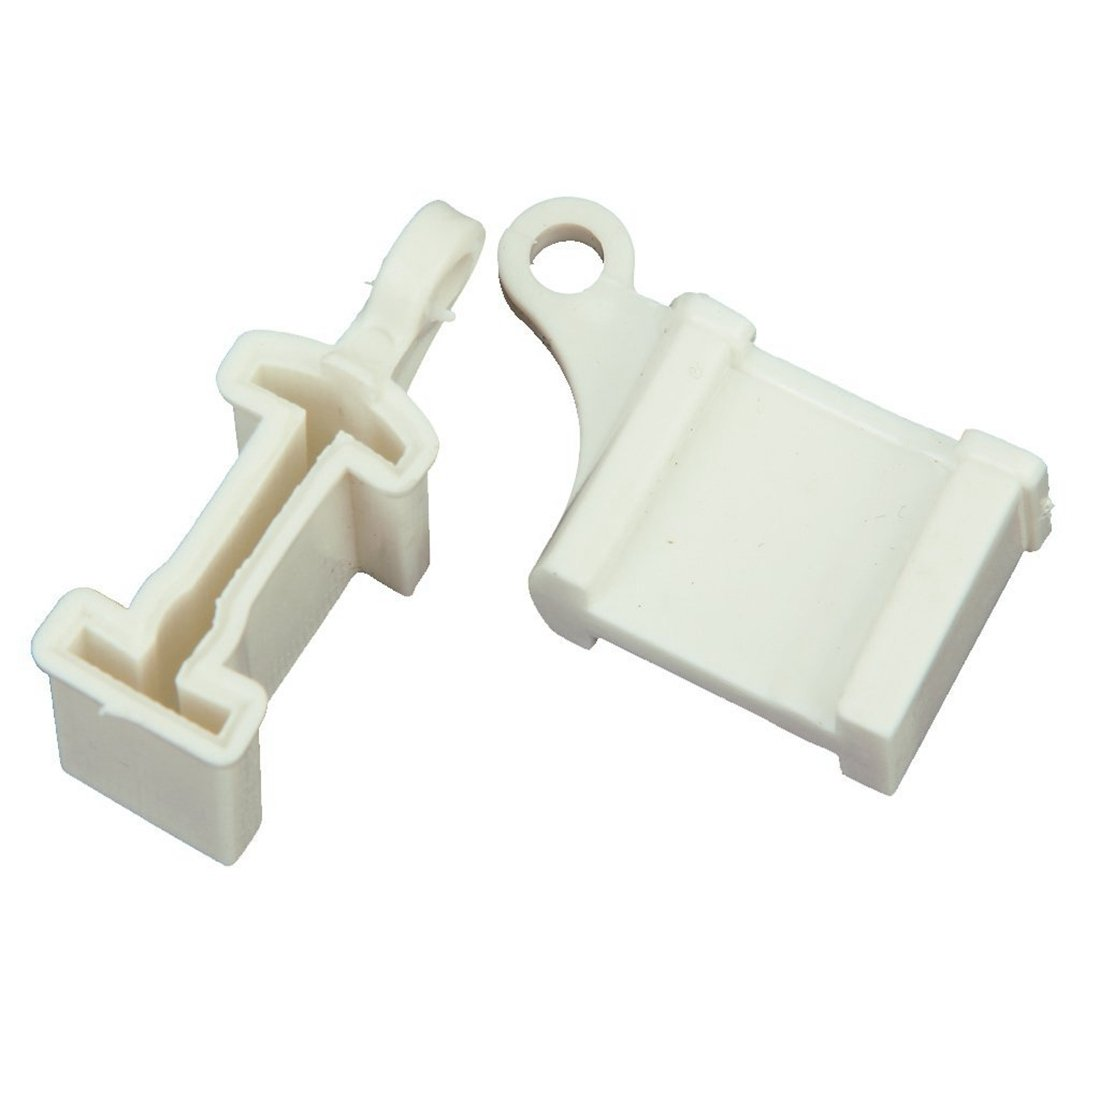 Curtain Rail Track Stops - SODIAL(R)2Pcs Window Curtain Rail Track Ends End Stops